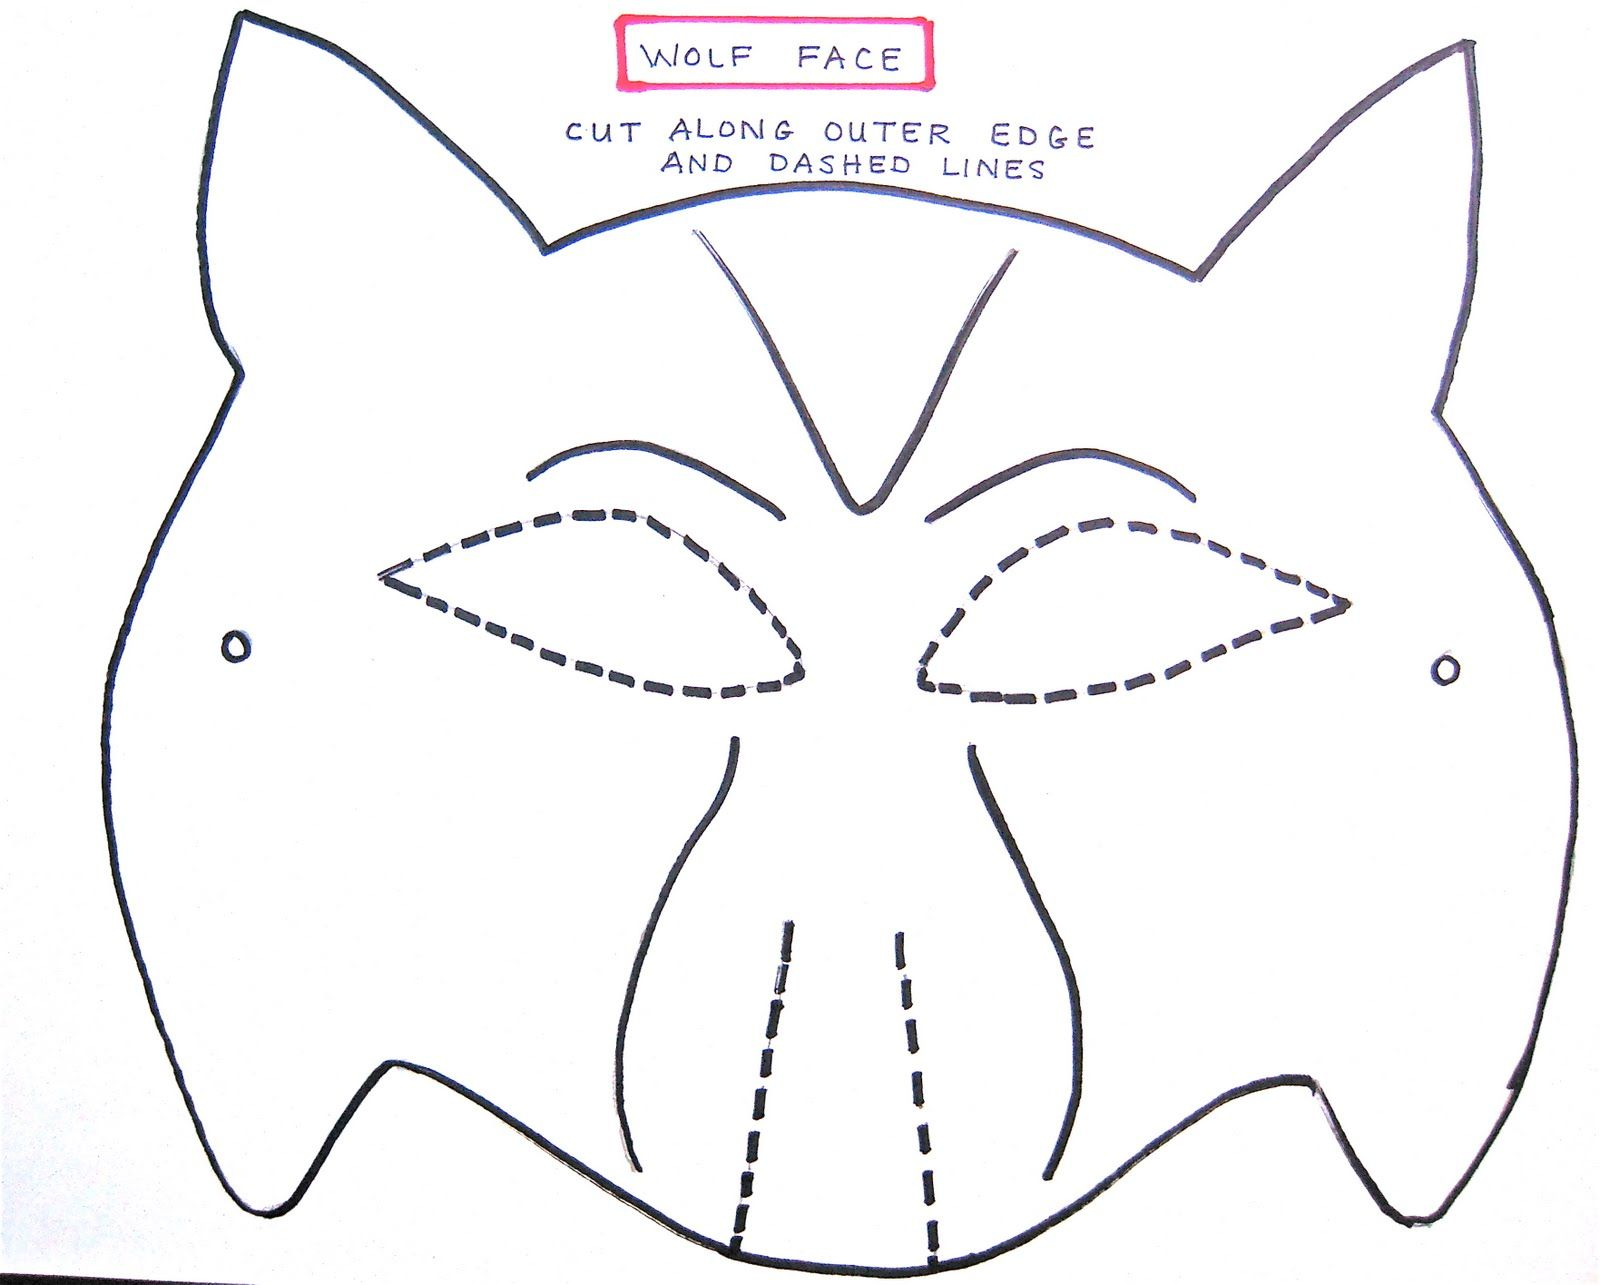 image regarding Printable Wolf Mask Template for Kids referred to as absolutely free printable wolf masks stencil Twilight Household: How towards